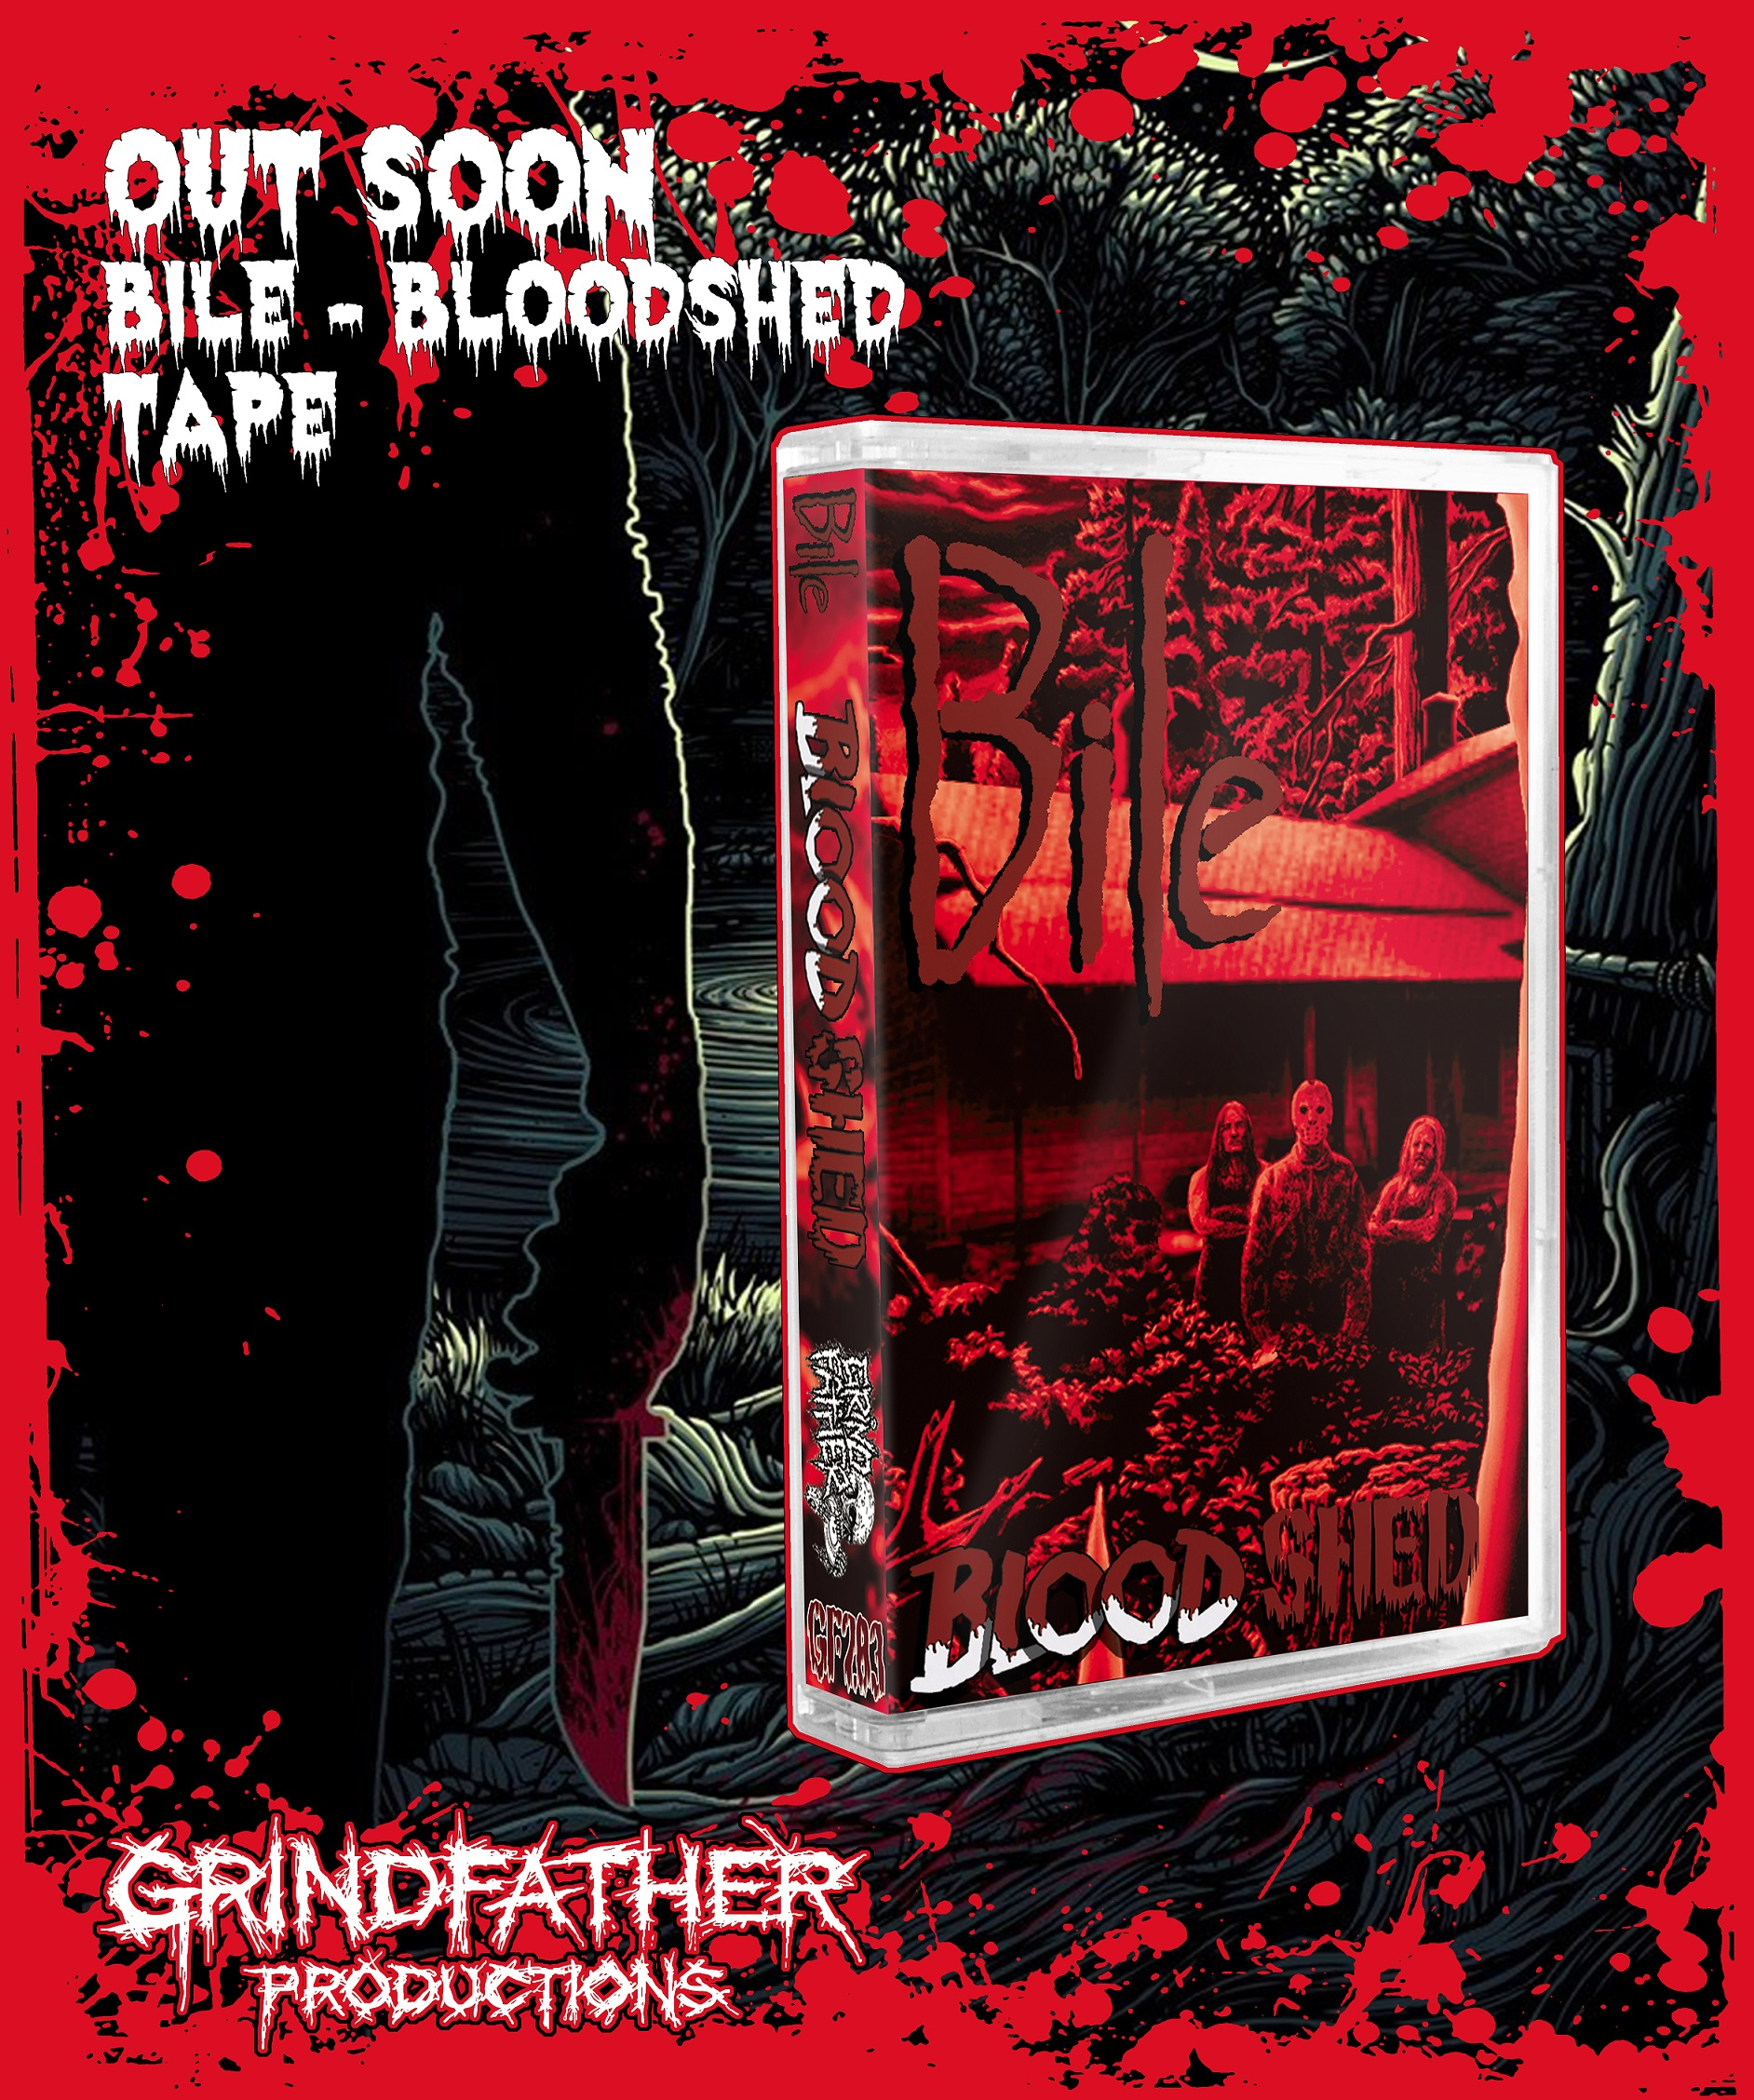 Bile - Bloodshed - out soon on Grindfather Productions